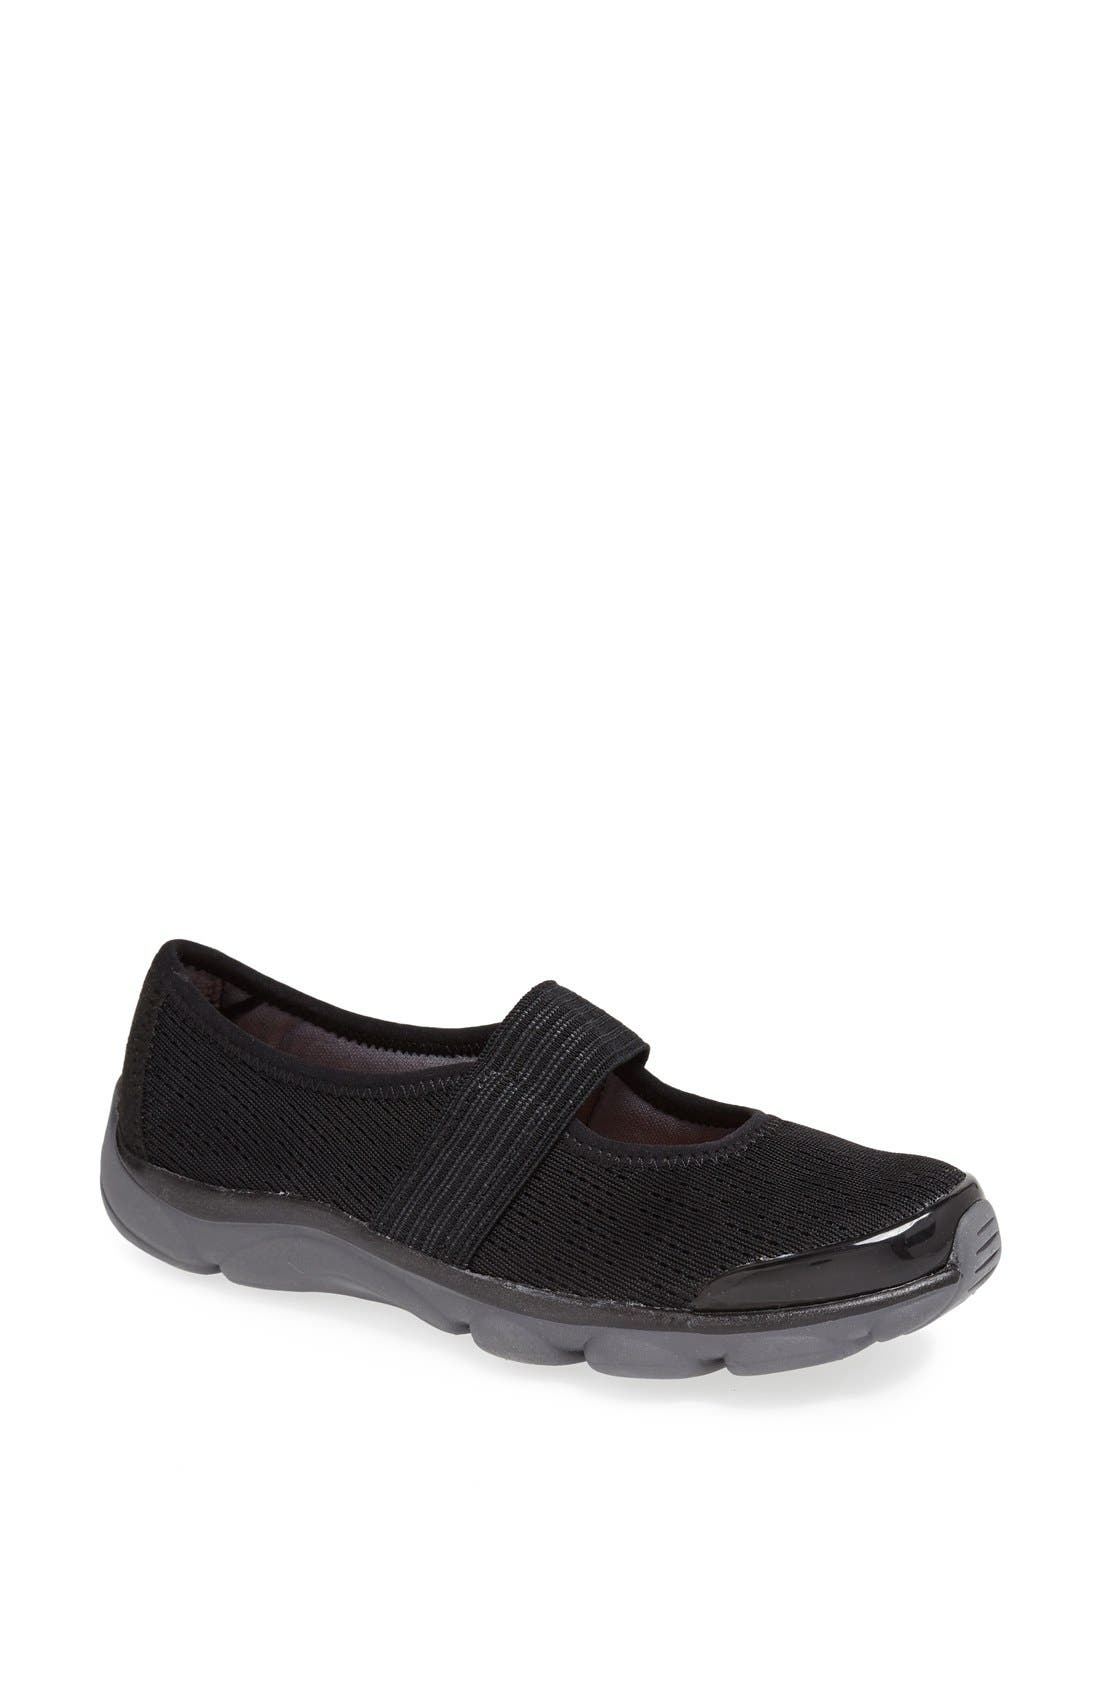 Alternate Image 1 Selected - Easy Spirit 'e360 - Ressa' Slip-On (Women)